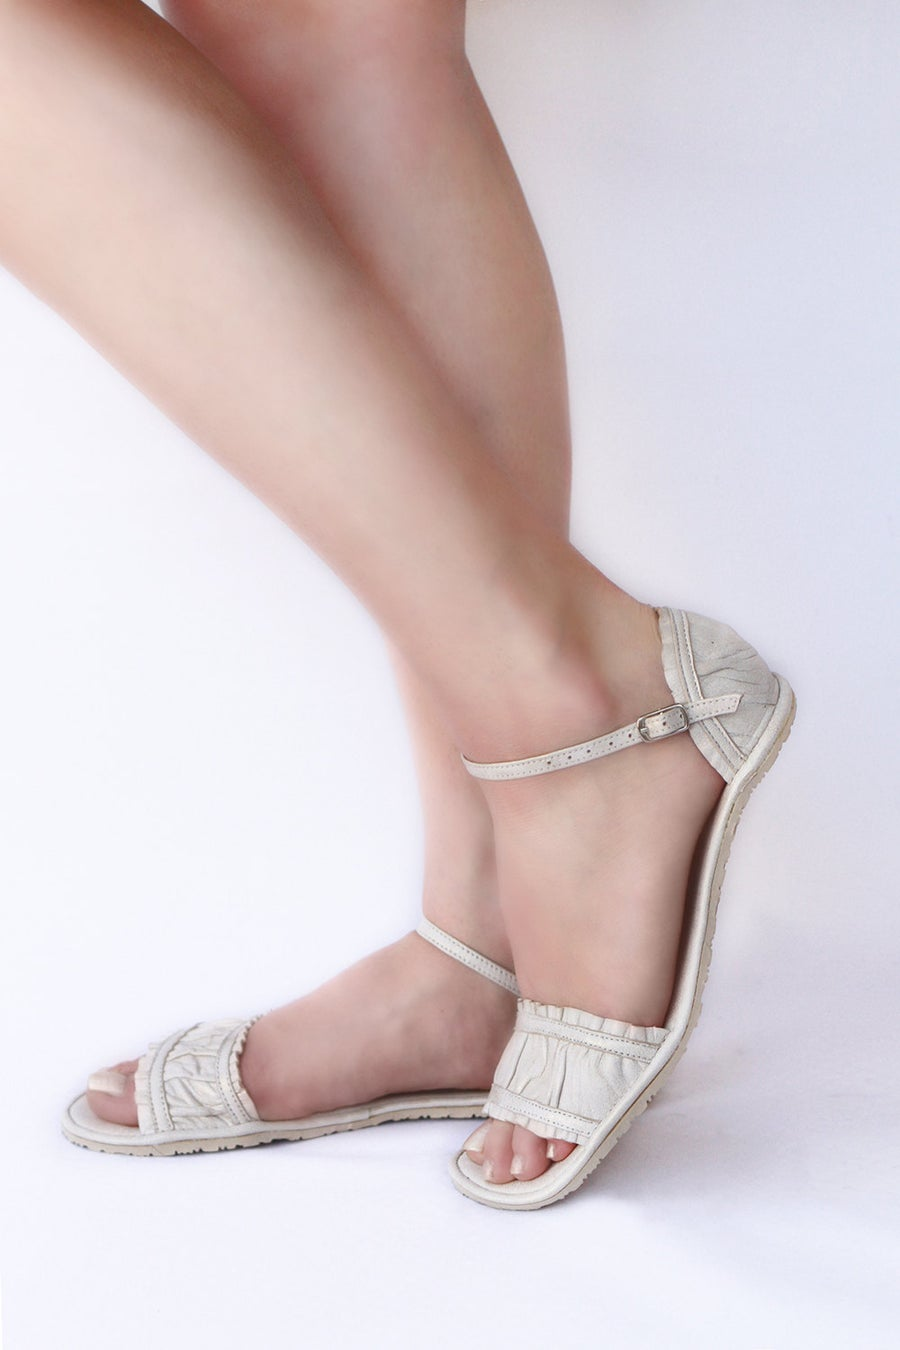 Image of Furbelow Sandals - in Golden sheer